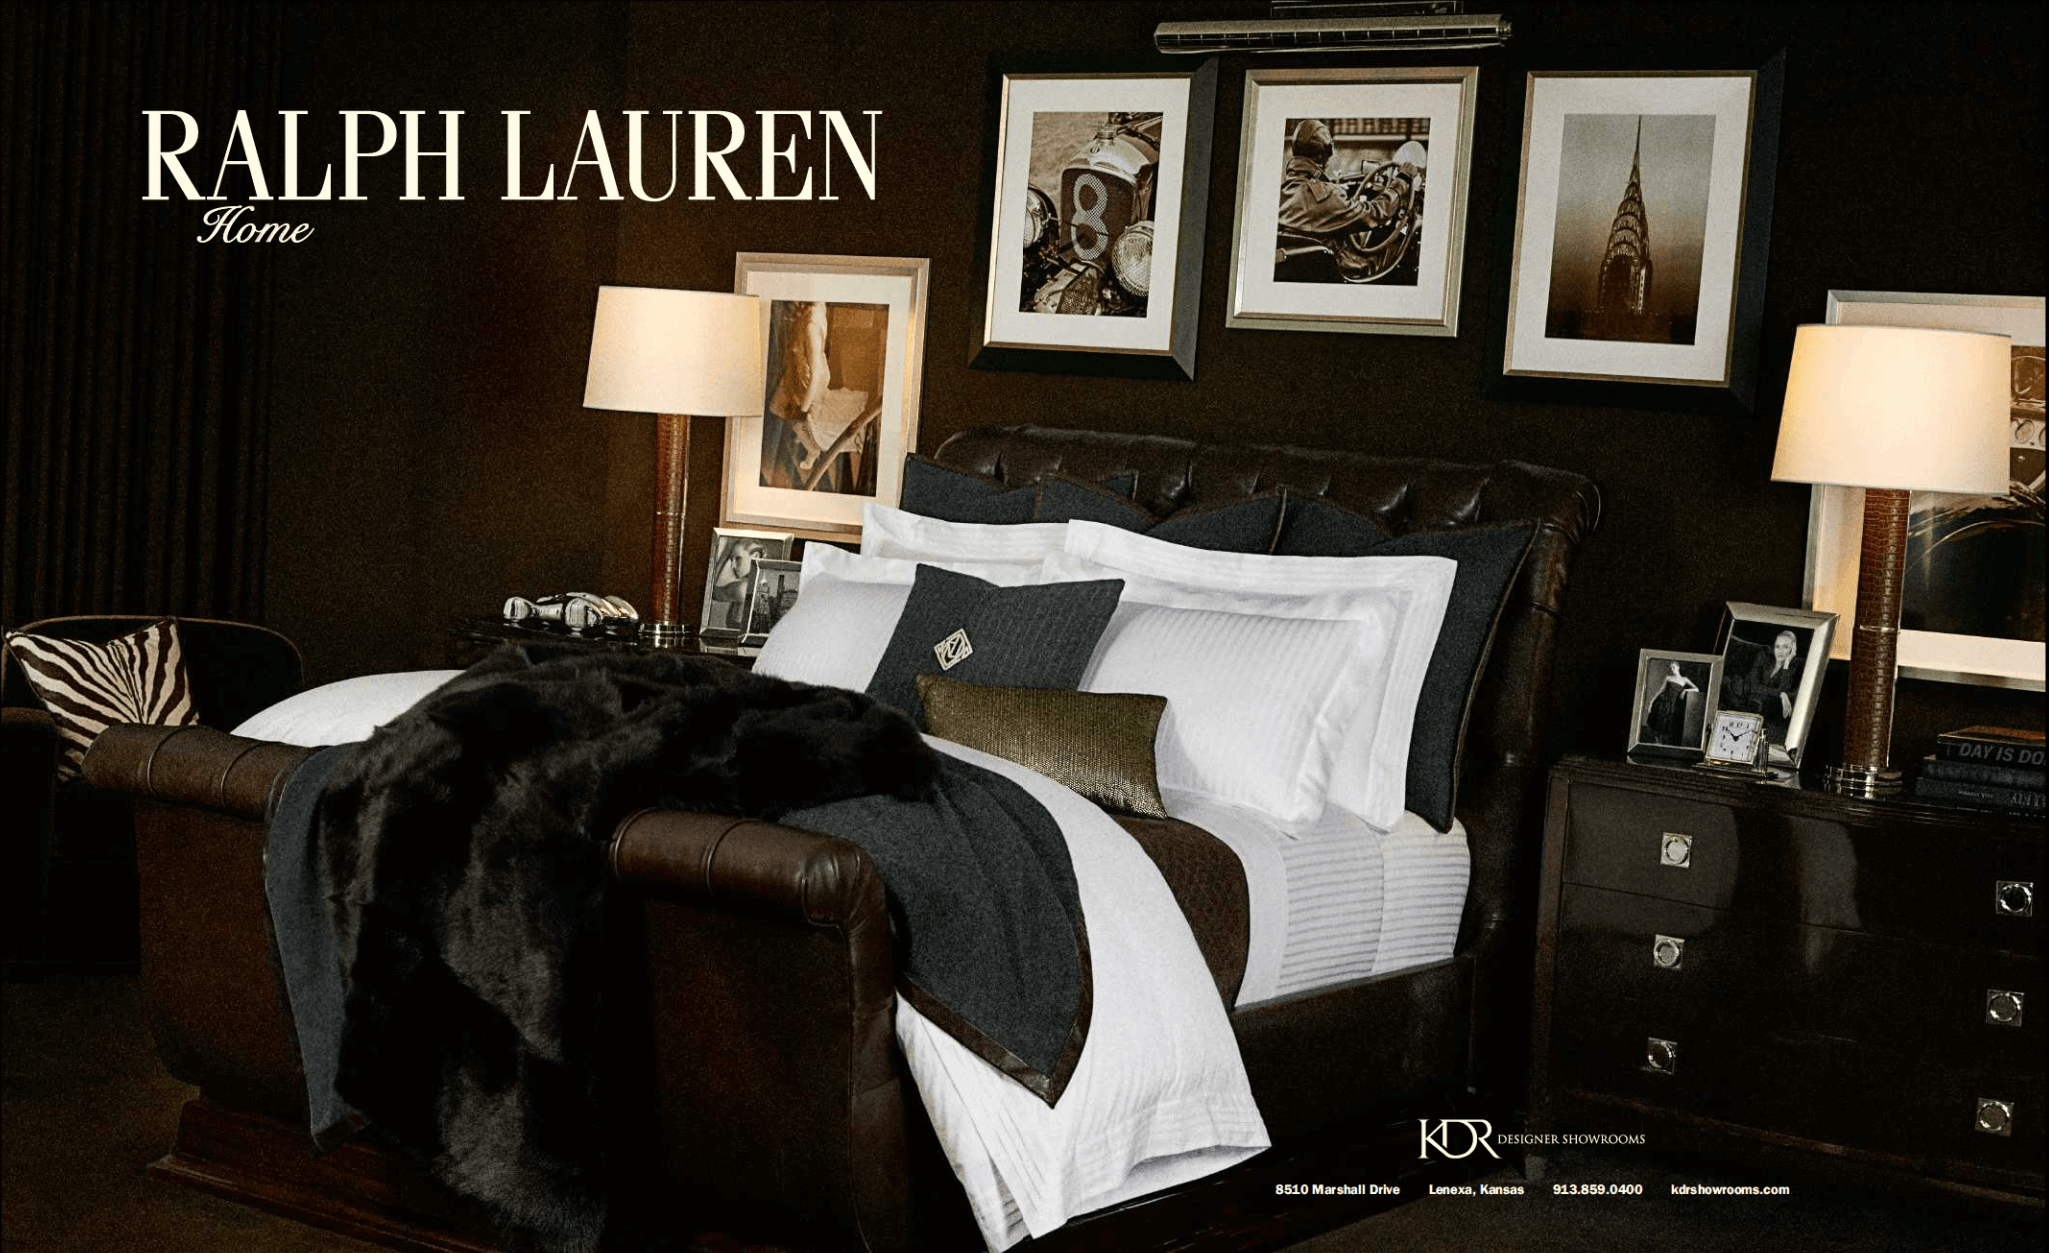 Ralph Lauren Home Bedroom KDR Spaces October 2015 Spread Ad ... on waterford area rugs, chanel area rugs, kate spade area rugs, horchow area rugs, jonathan adler area rugs, suzanne kasler area rugs, nina campbell area rugs, z gallerie area rugs, lexington area rugs, victoria hagan area rugs, barbara barry area rugs,